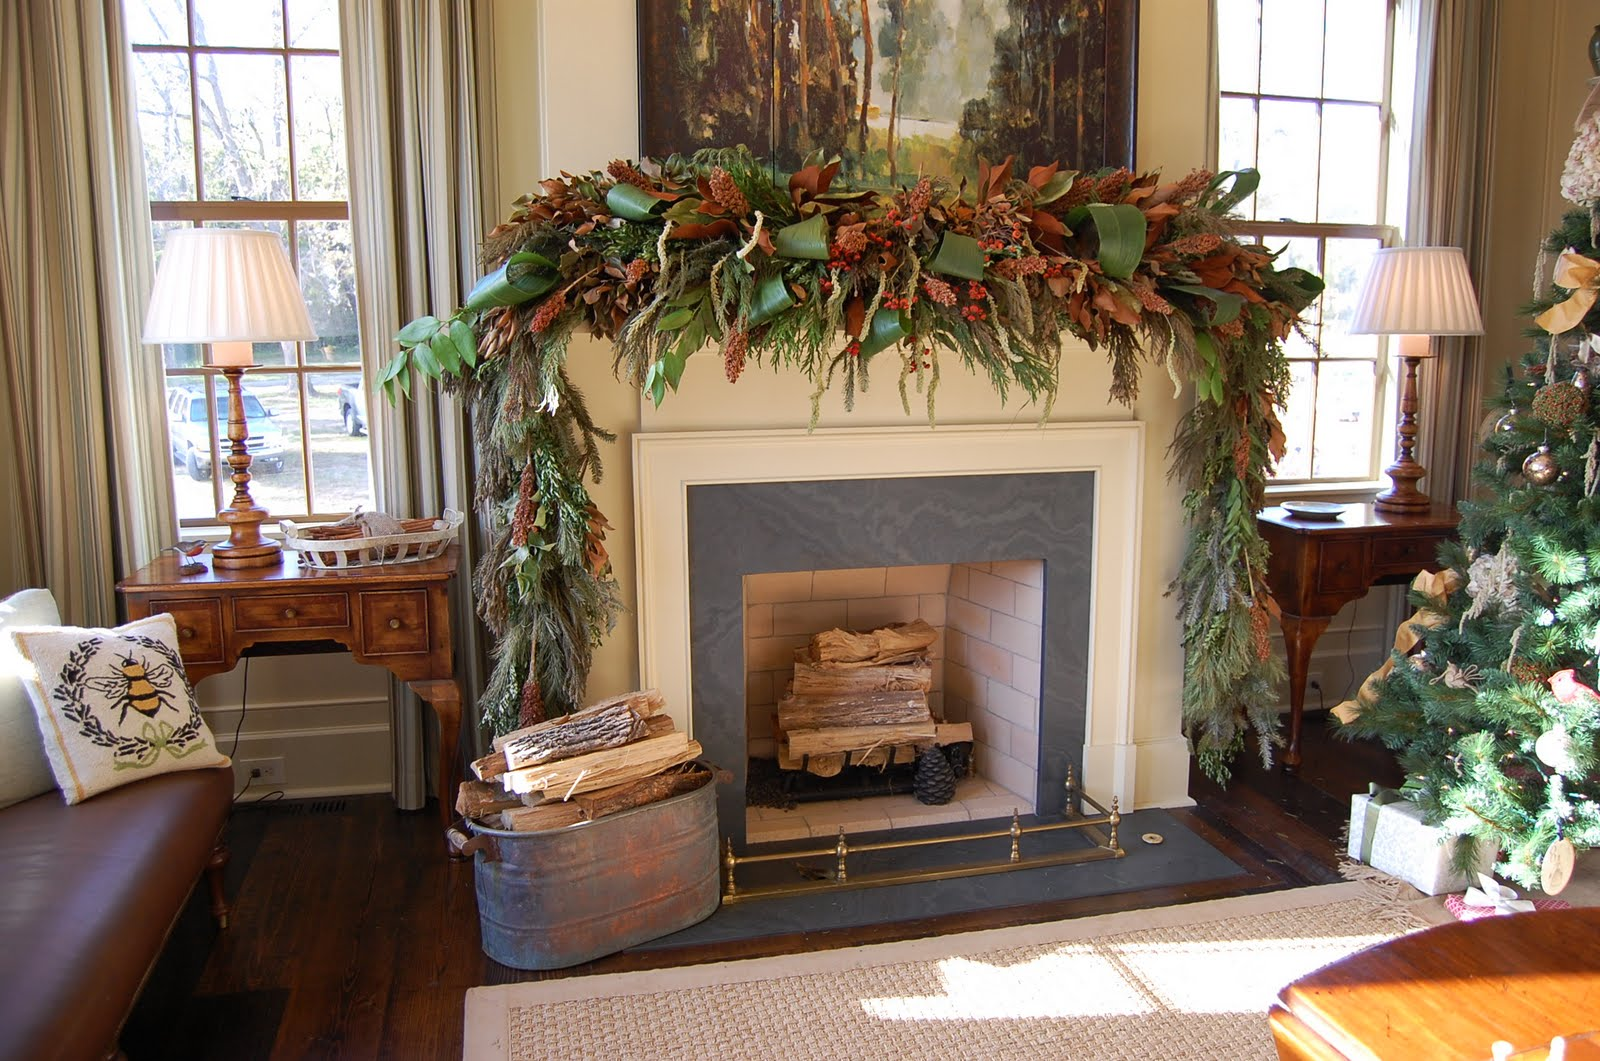 how to decorate a fireplace for christmas - How To Decorate A Fireplace Mantel For Christmas